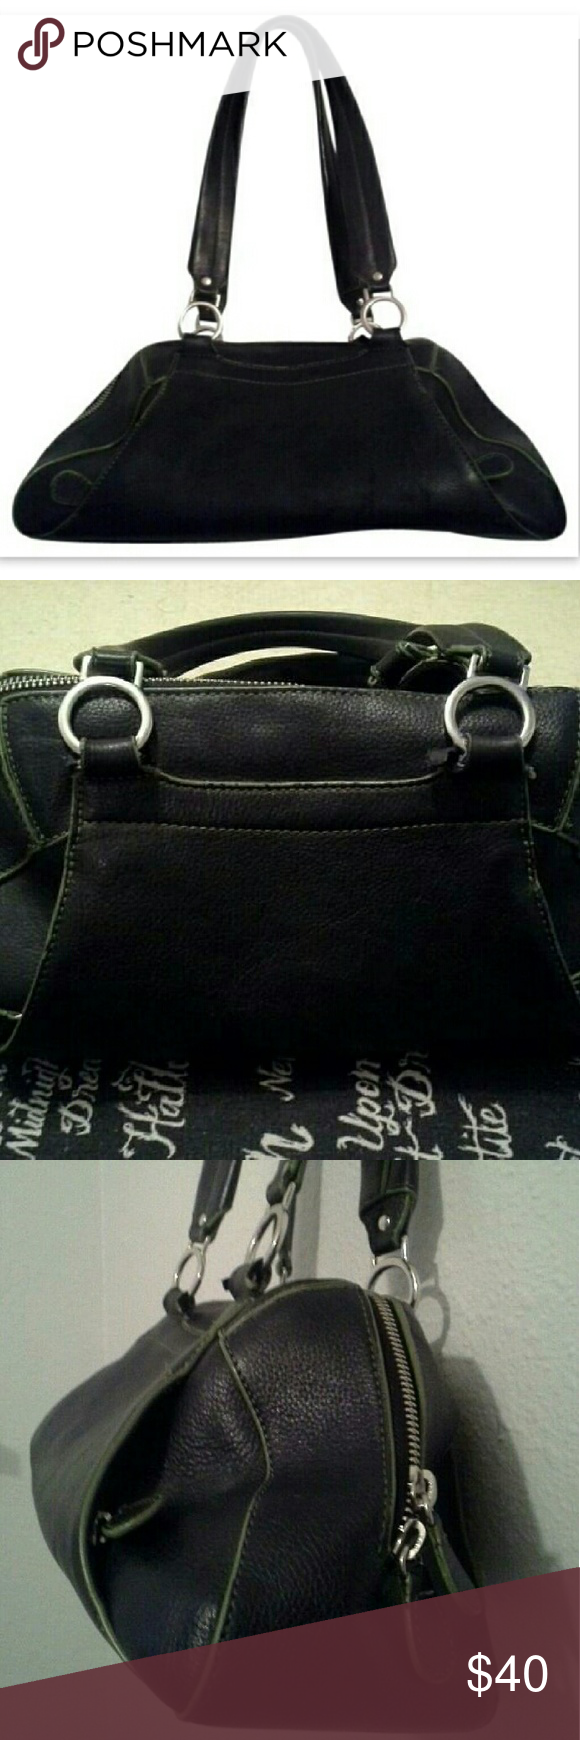 """Danier Genuine Leather Handbag Black Shoulder Bag Gorgeous Danier Genuine Leather handbag! MAKE ME AN OFFER : ) Great overall condition - minor signs of wear (some very light peeling, small mark on bottom), tons of use left! See pics! Classic black baguette shoulder bag with green accents! Tons of zip pockets to store all of your essentials! Medium size, comfortable carry. Perfect purse for fashionable ladies!  Retail $249! Measurements are as follows:  Height: 6""""  Length: 14""""  Width: 3.5""""…"""